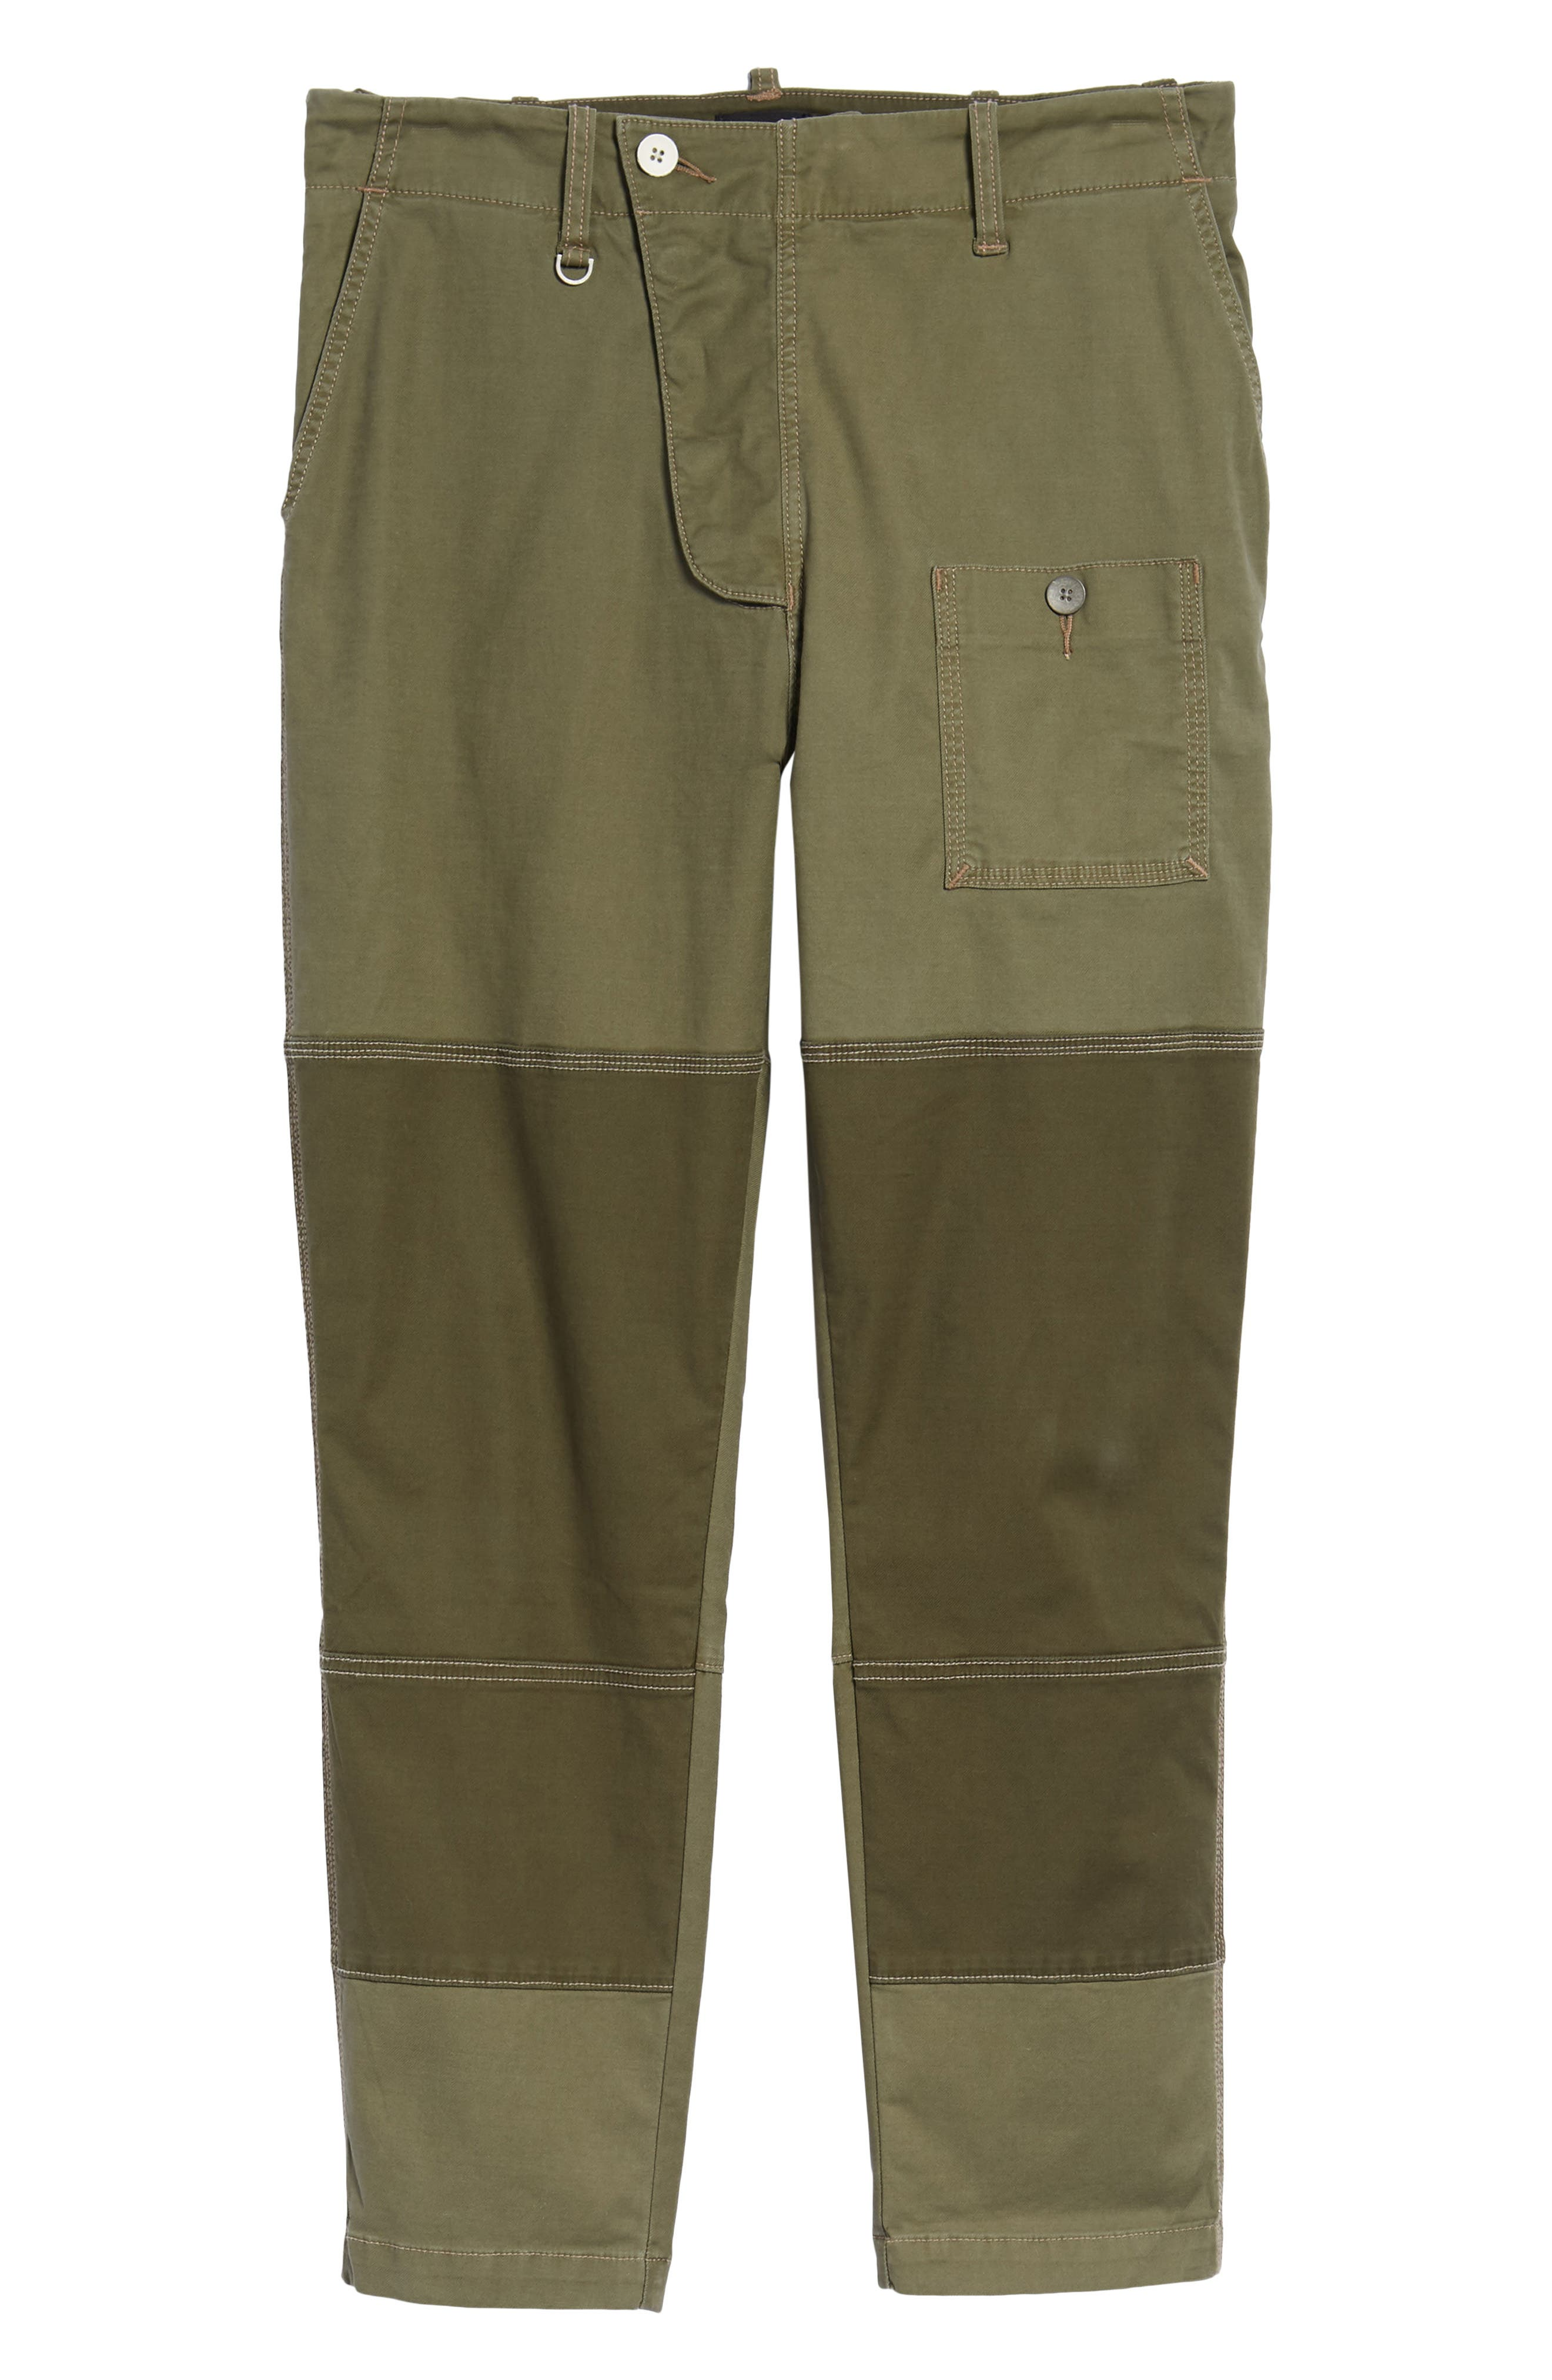 Slouchy Slim Fit Cargo Pants,                             Alternate thumbnail 6, color,                             Army Green 1